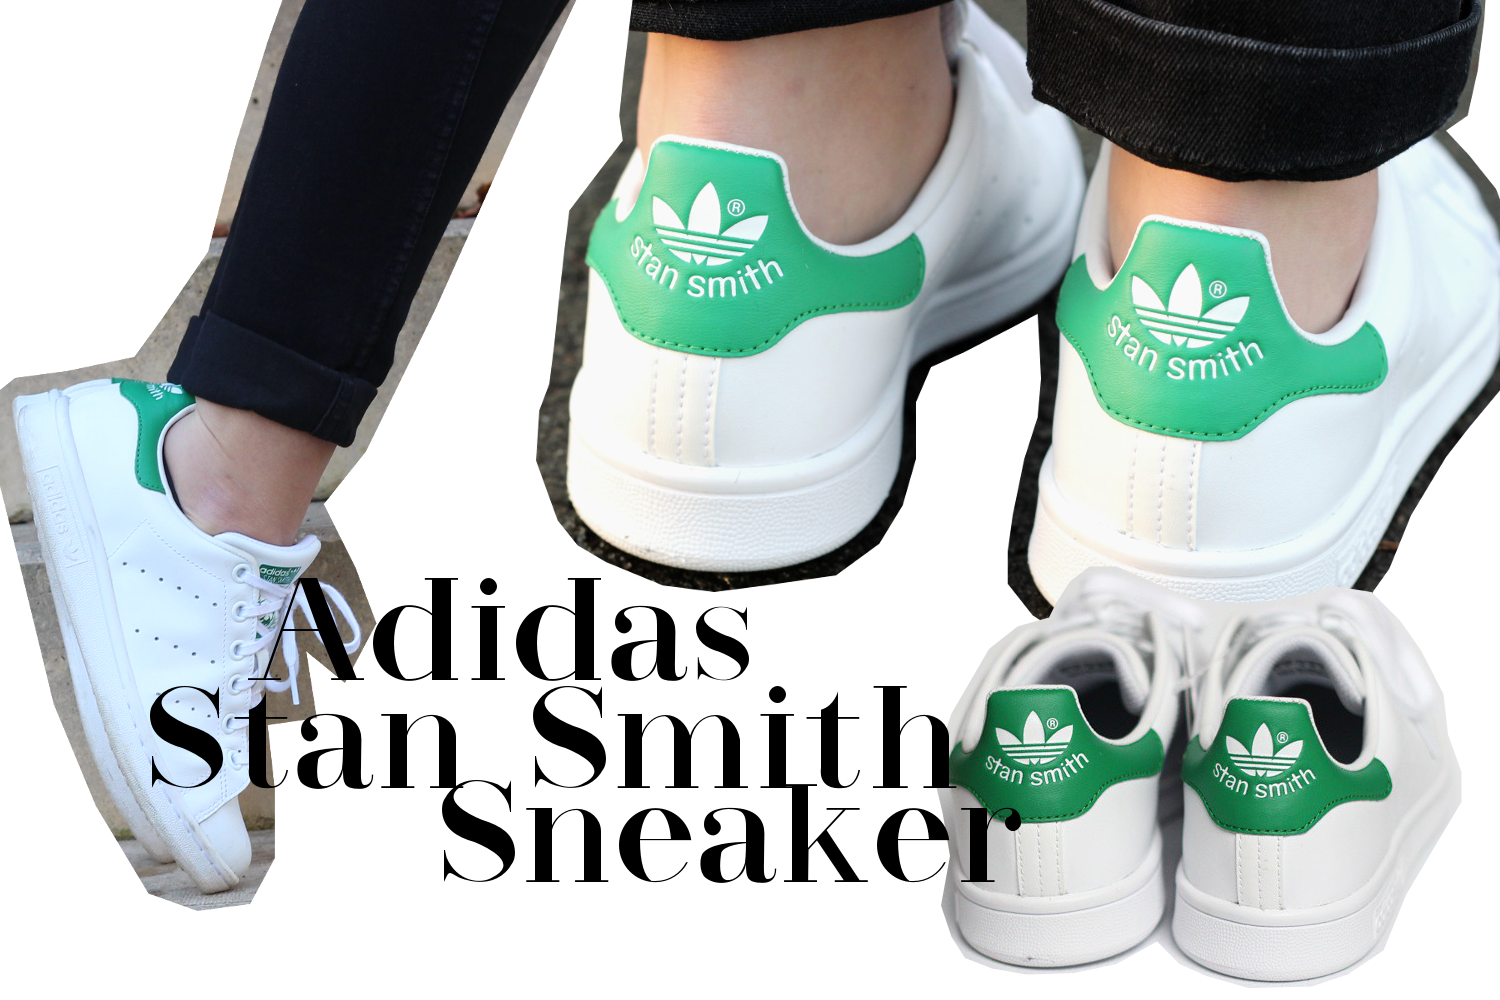 bezaubernde nana, bezauberndenana.de, fashionblog, modeblog, germany, deutschland, mode favoriten 2015, trends 2015, fashion, mode, adidas stan smith sneaker